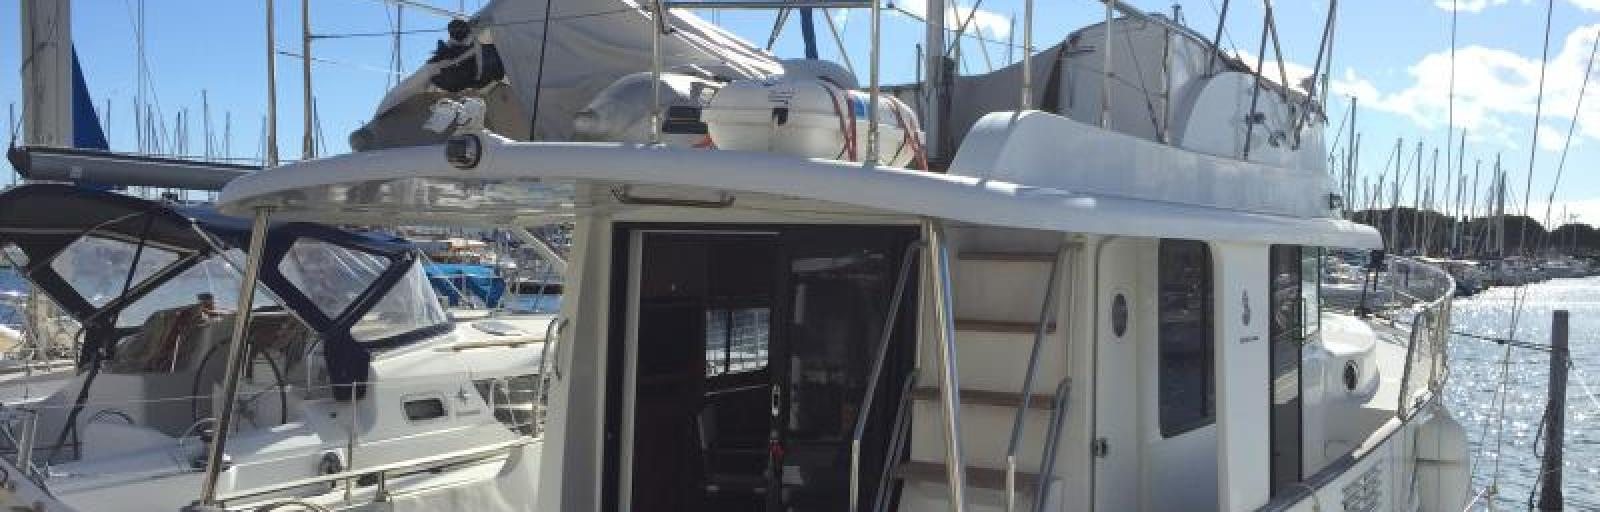 AYC - Beneteau Swift Trawler 44